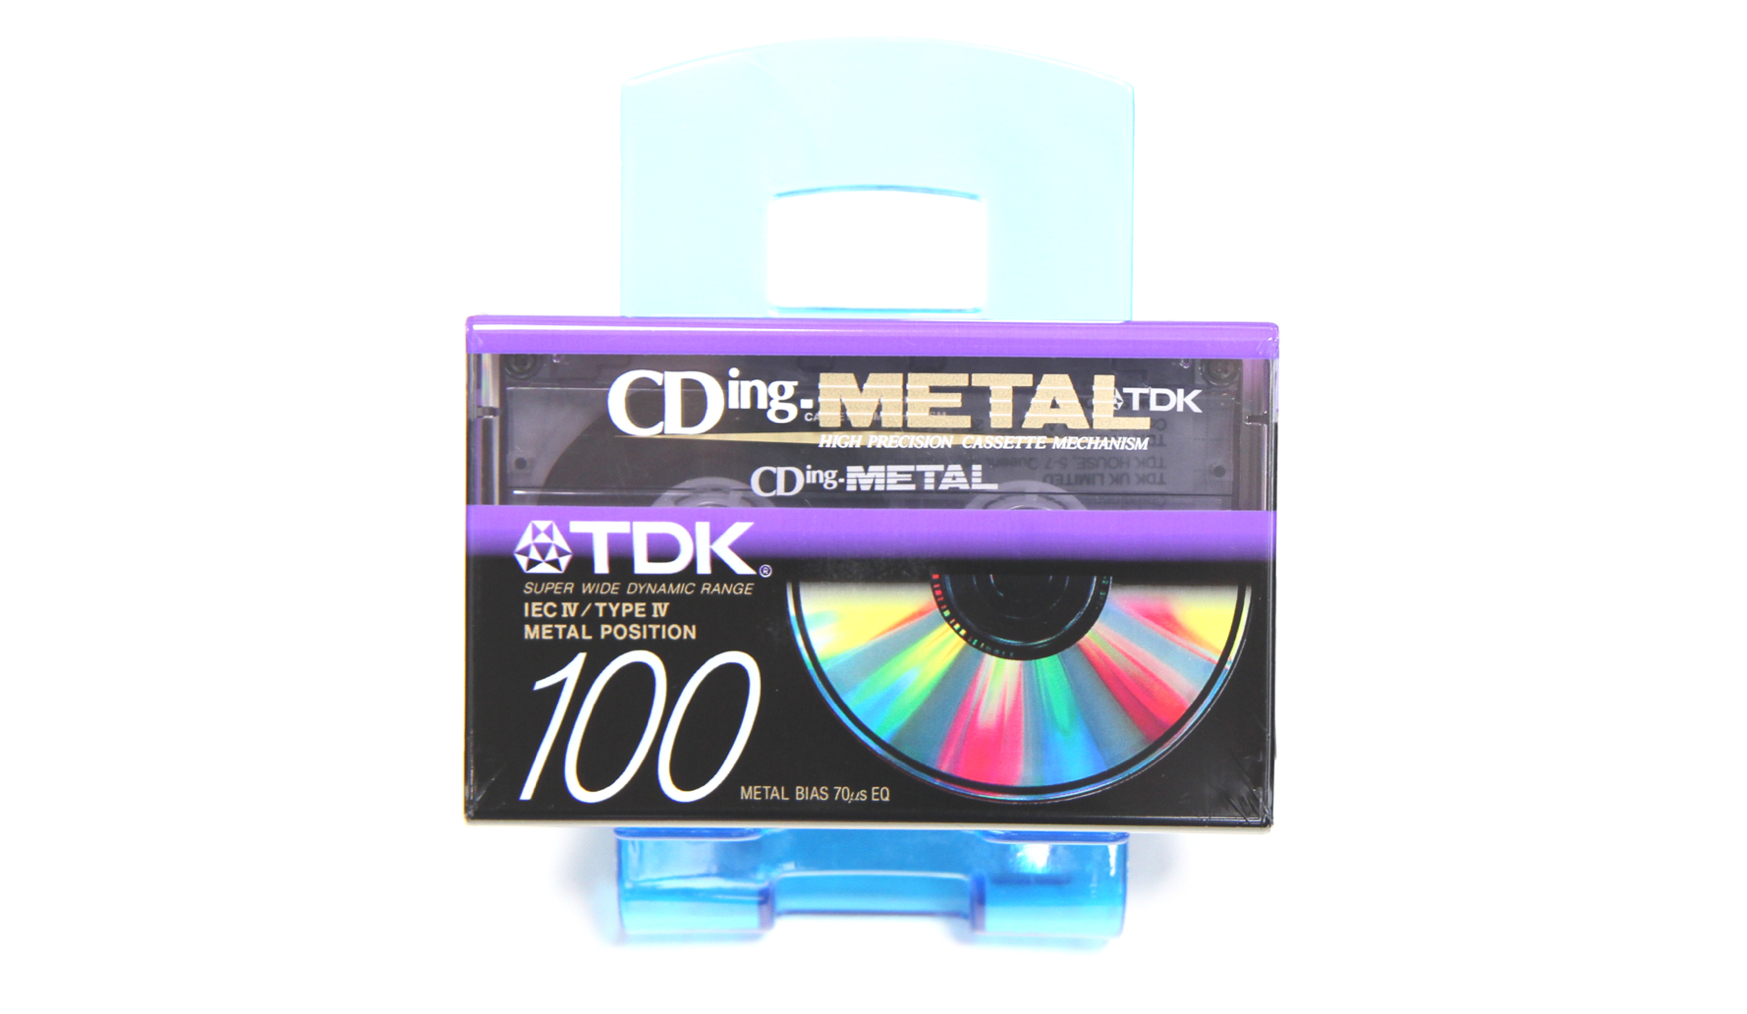 TDK CDing100 Position Metal